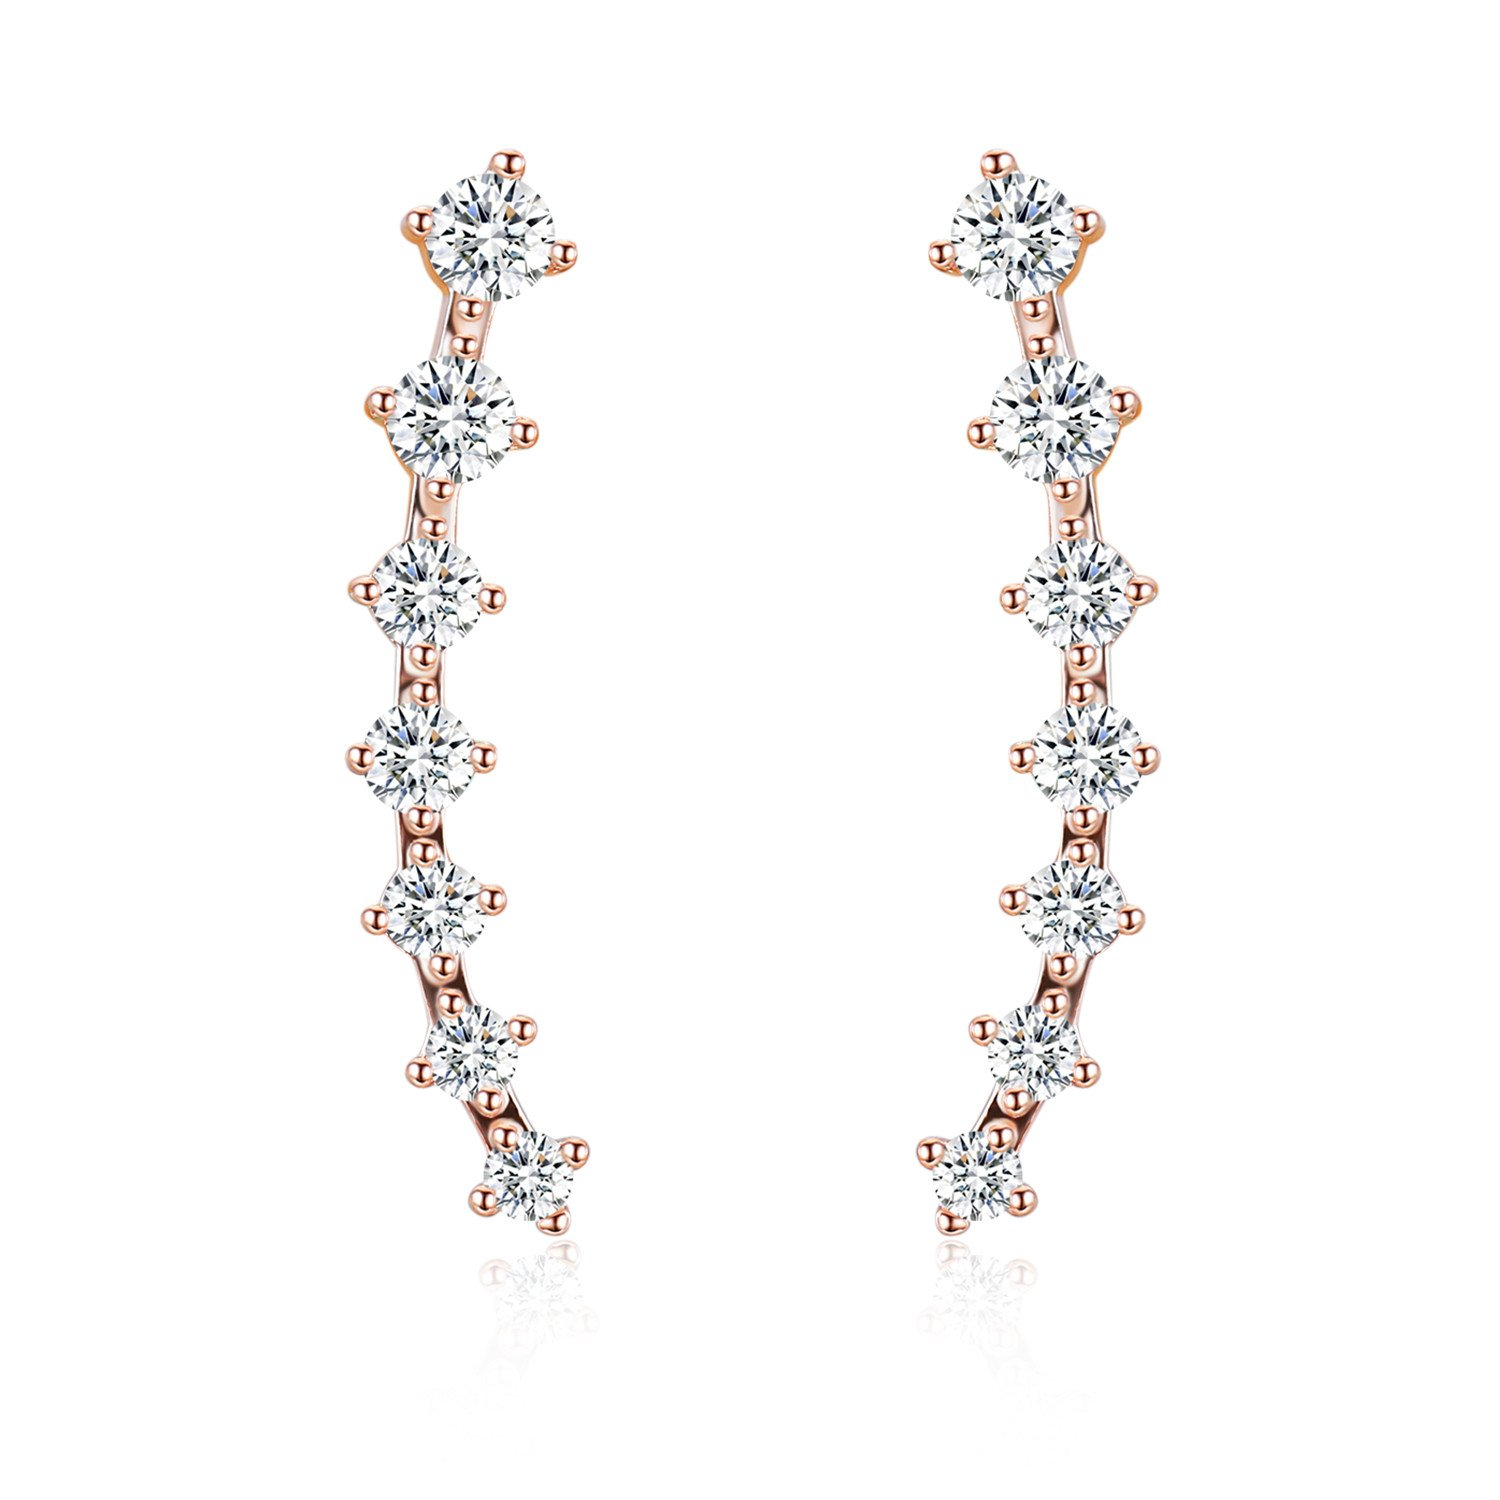 EVER SHINE Ear Cuffs Vines Climbers Wrap Pierced Pins Hook Earrings CZ Crystal 7 Stones (Rose Gold Tone with White Cubic Zirconia)